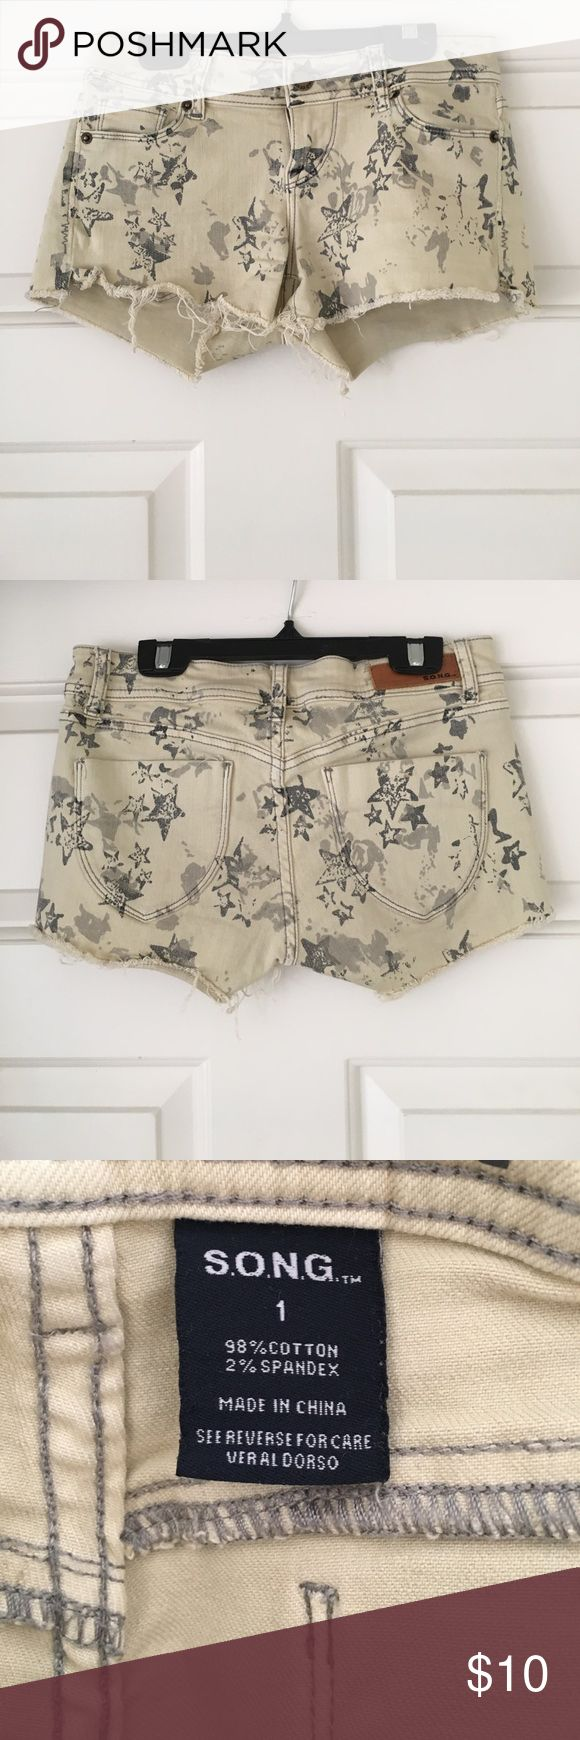 Star Printed Beige Shorts Beige jean shorts with fun star print on them. The perfect Fourth of July shorts! Two real pockets on the back and two semi-real pockets on the front, they're kinda like mini-pockets. Junior size 1 fits like a women's 0.                                                                                     •open to offers• S.O.N.G. Shorts Jean Shorts